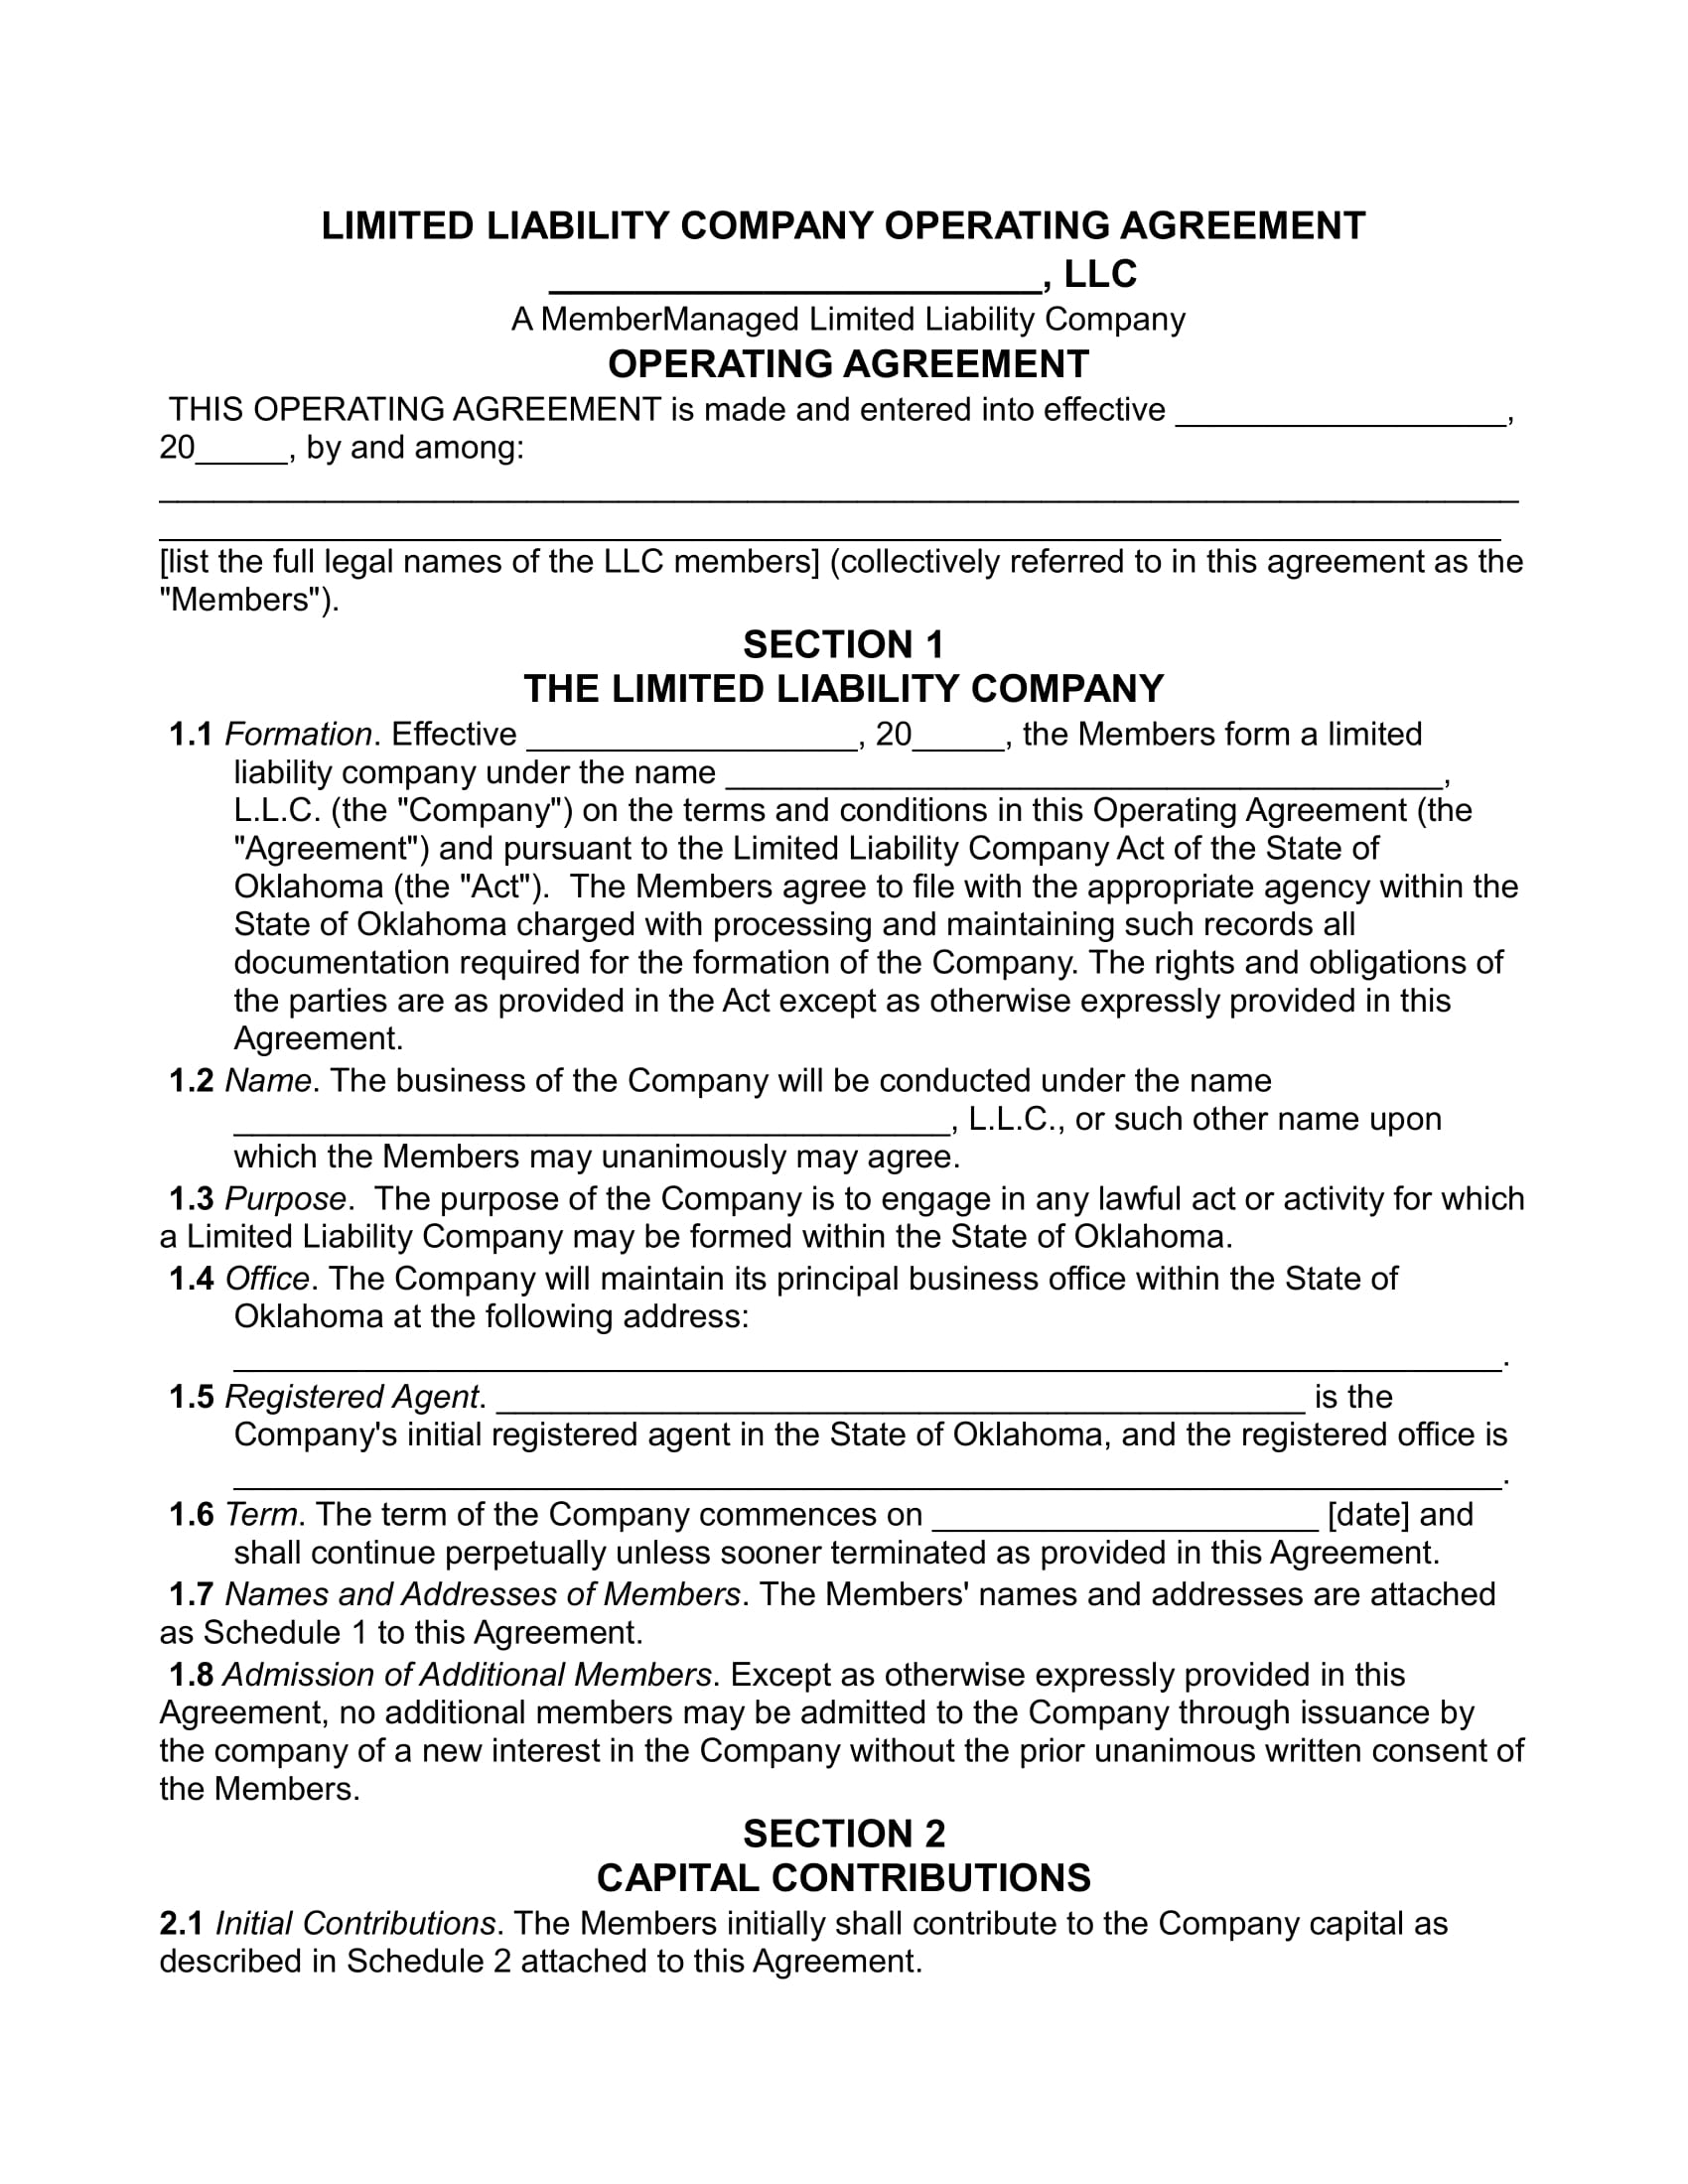 limited liability operating agreement contract form 01